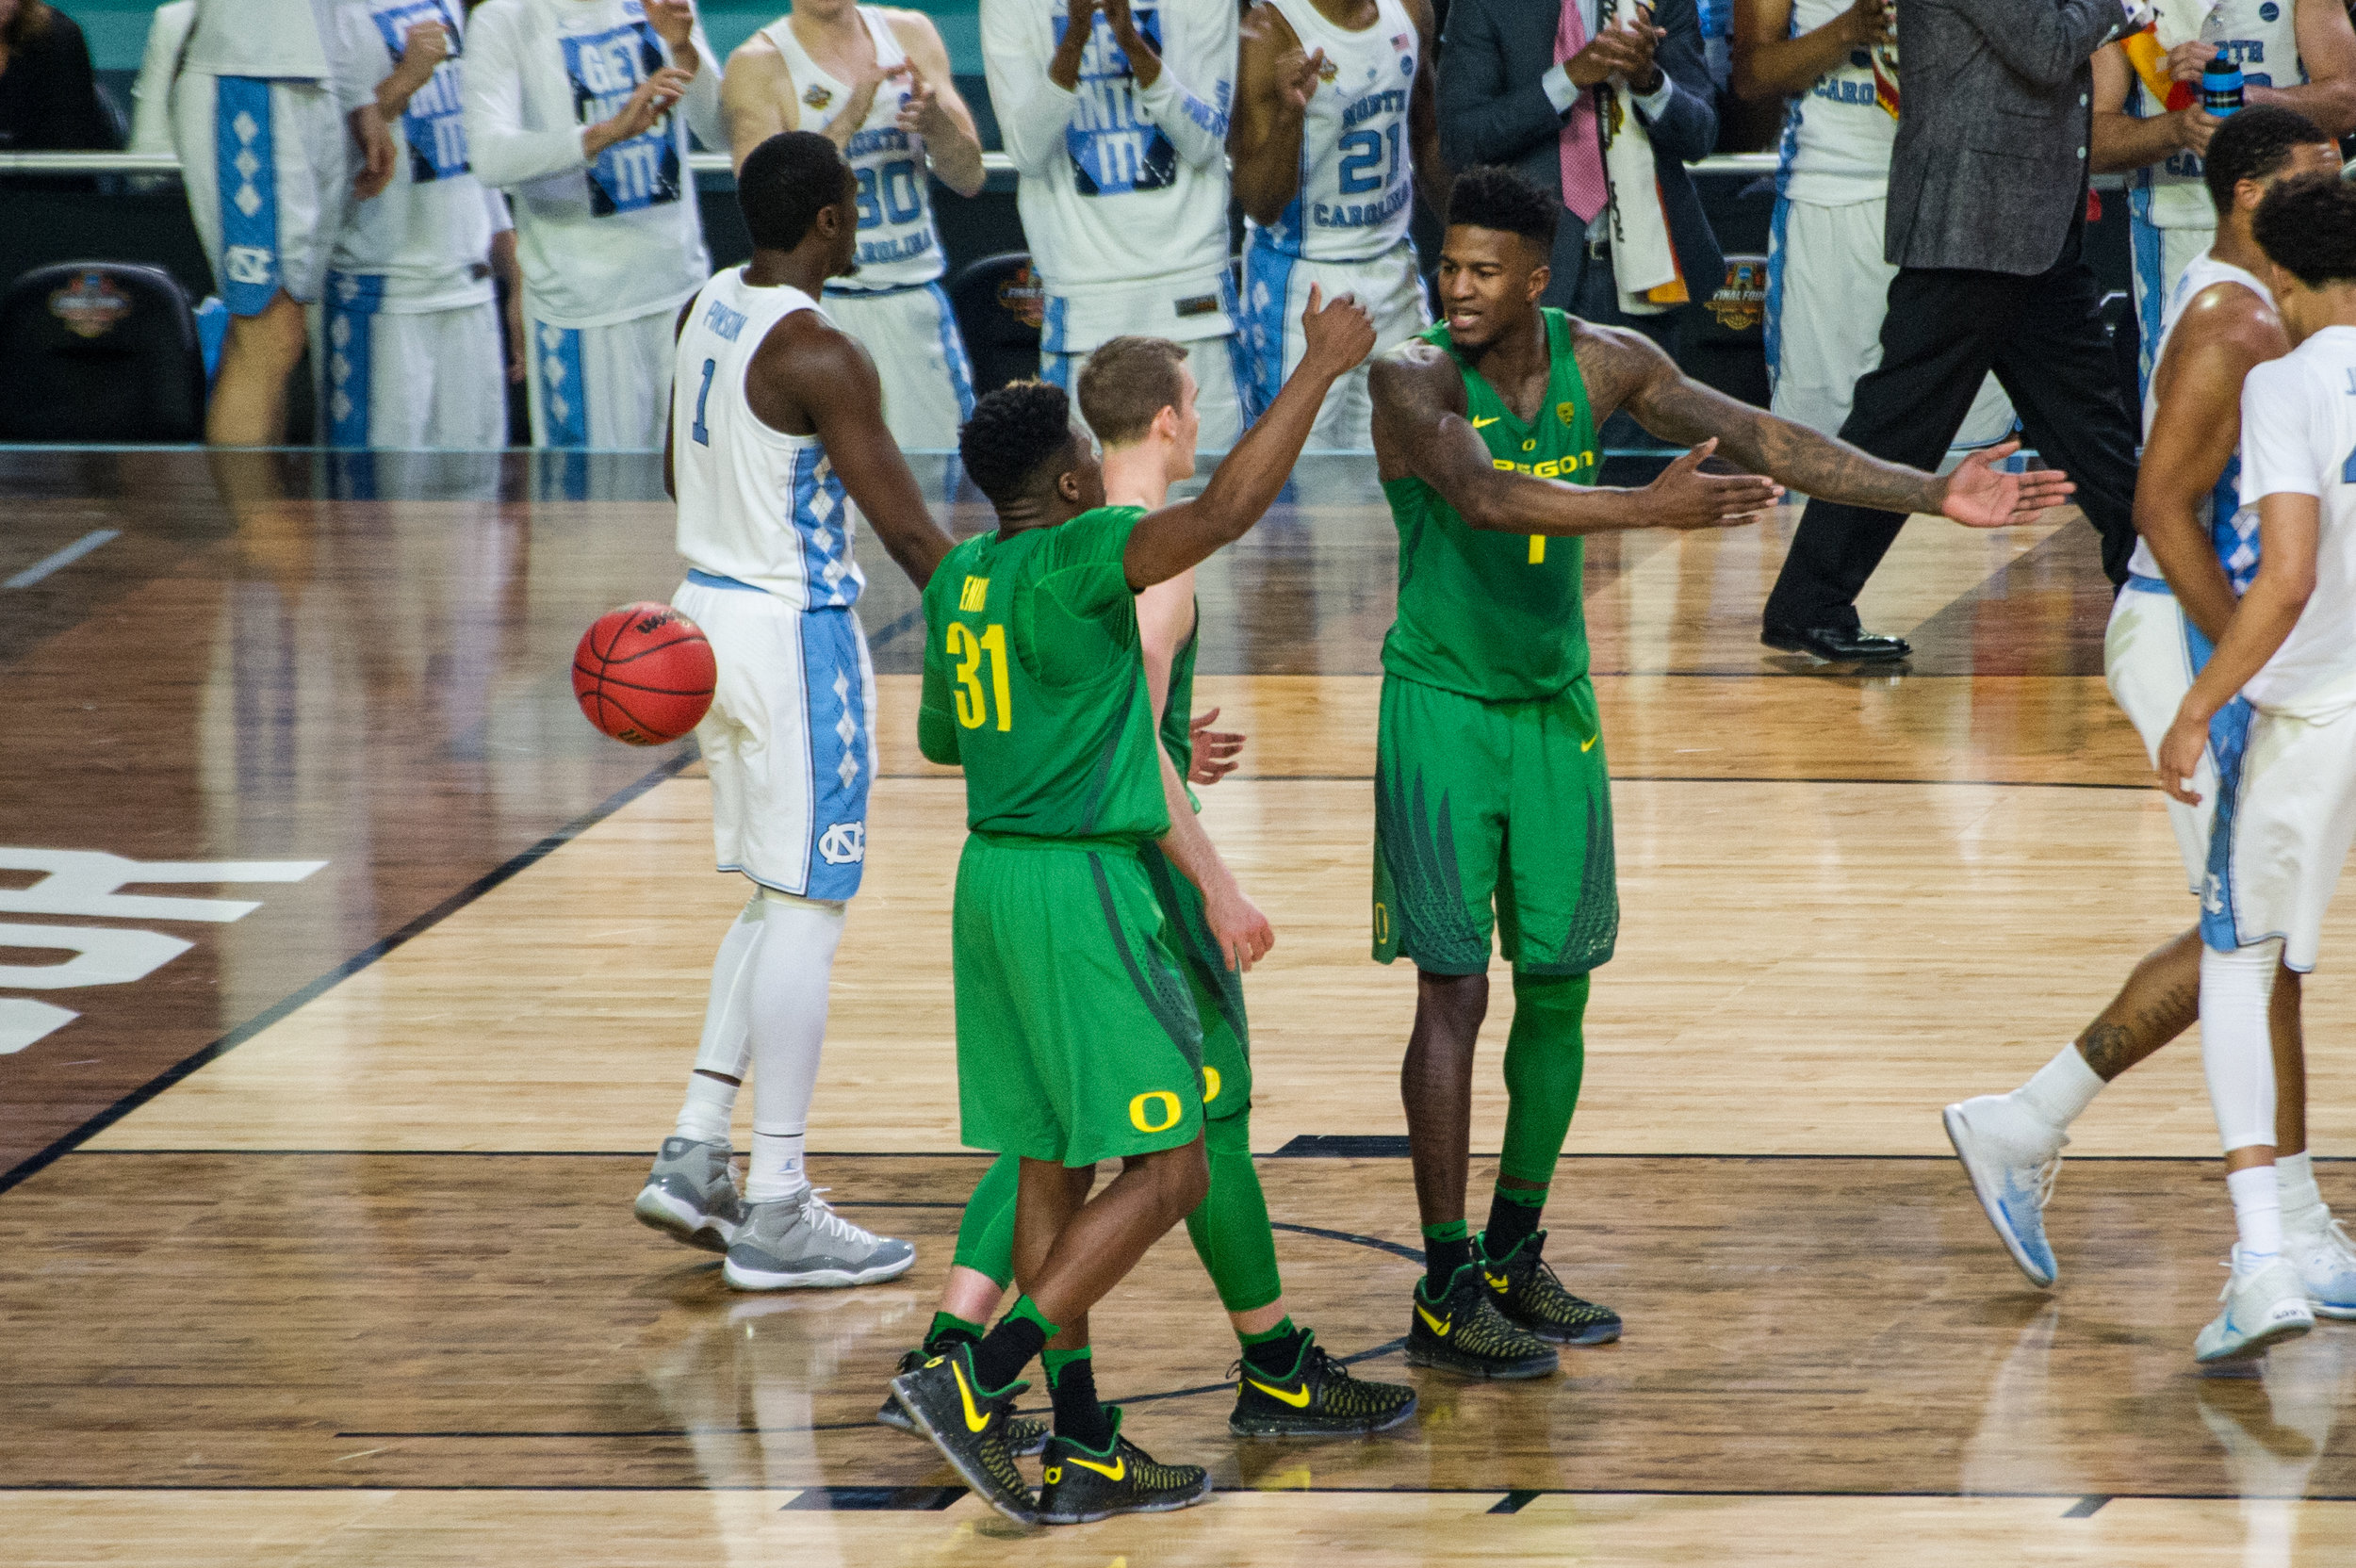 17.03.31.emg.an.final.four.oregon.vs.north.carolina-34.jpg